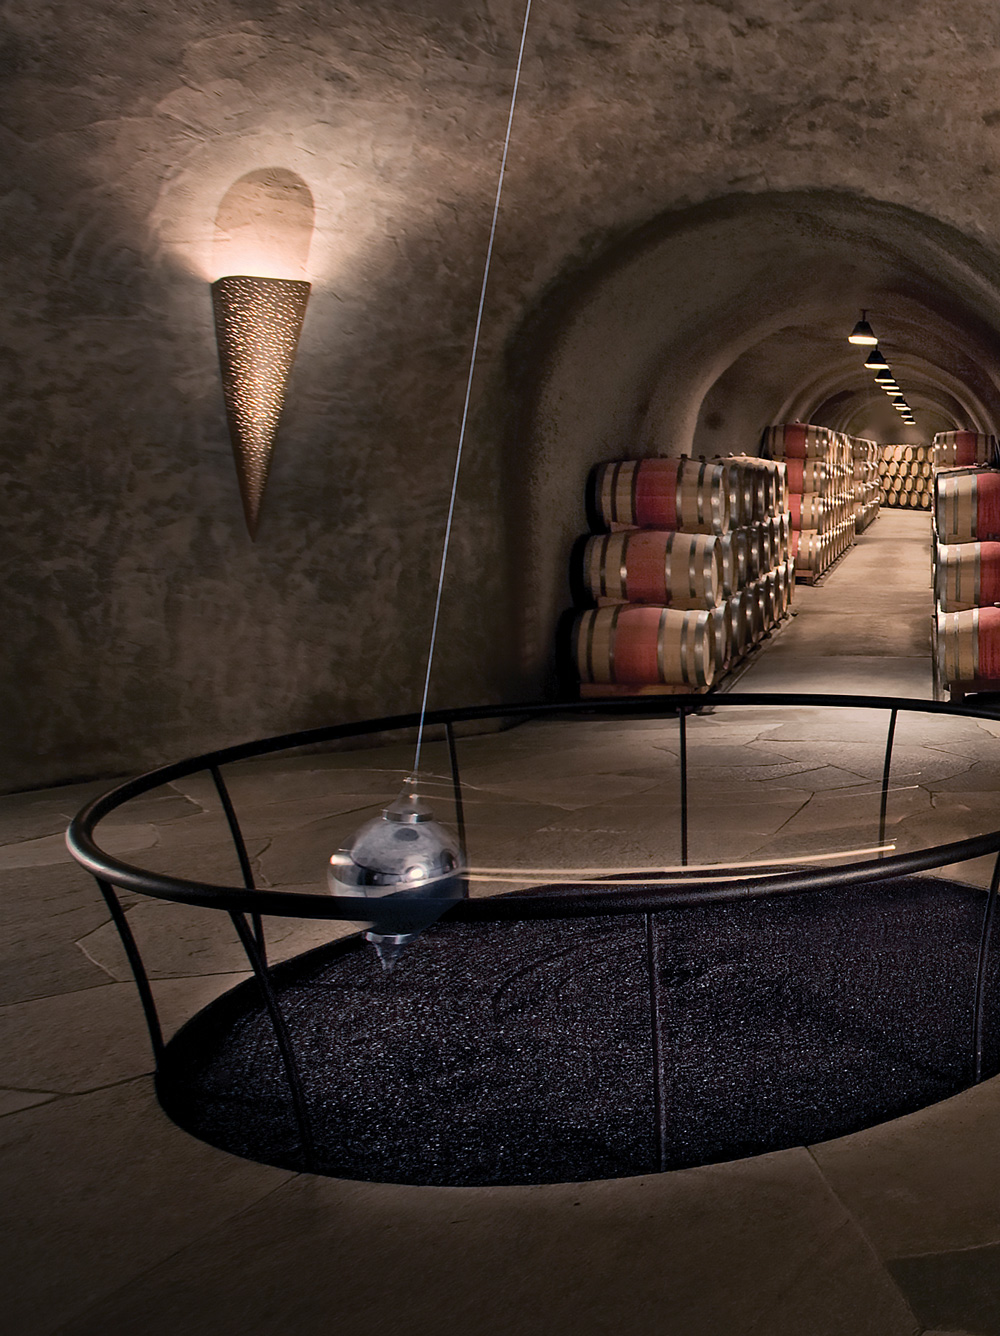 The Foucault pendulum at Stag's Leap Wine Cellars